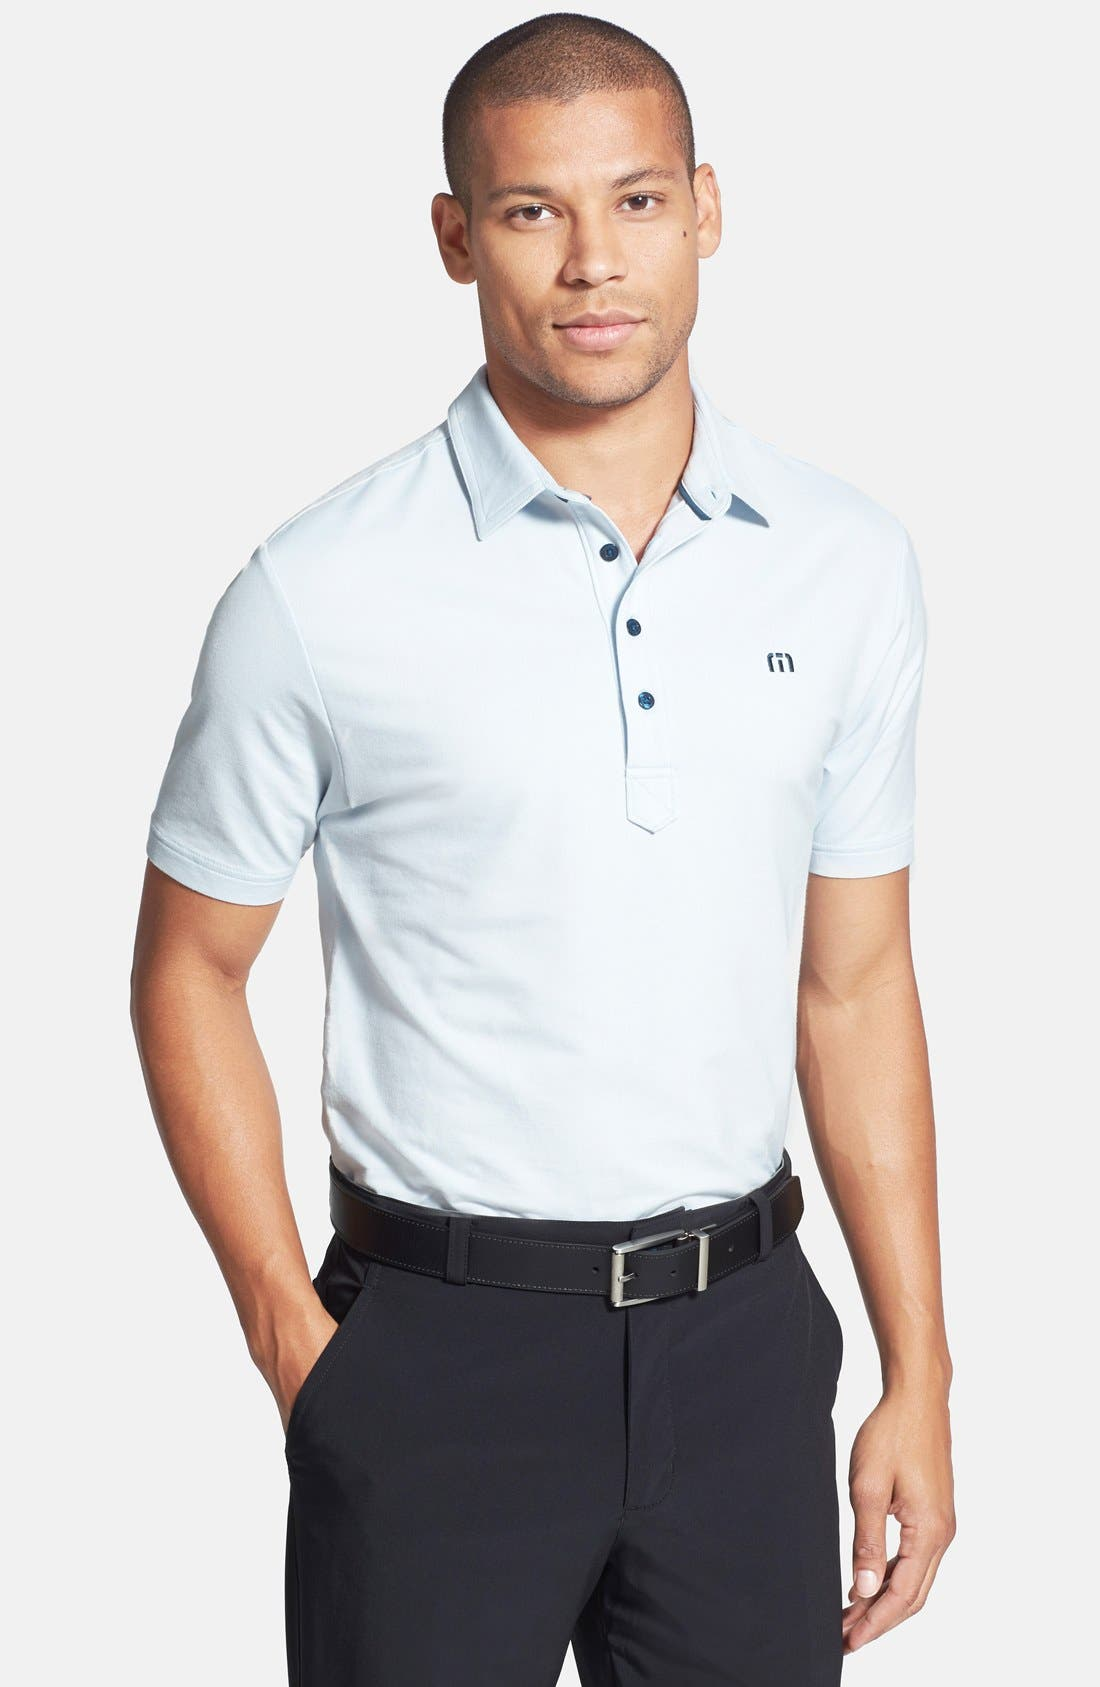 Alternate Image 1 Selected - Travis Mathew 'Morrison' Trim Fit Golf Polo